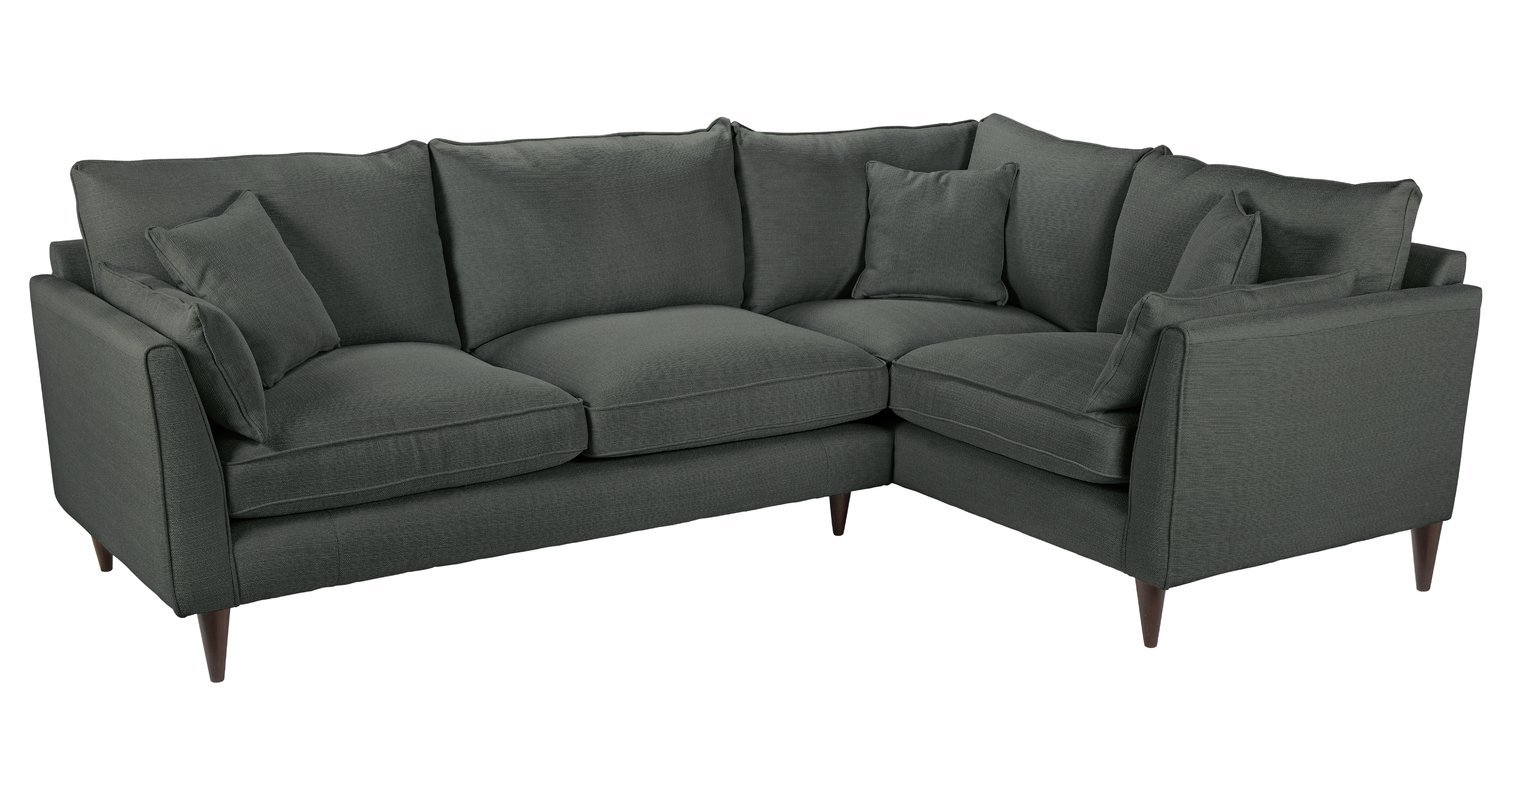 Argos Home Hector Right Corner Fabric Sofa - Charocal Linen